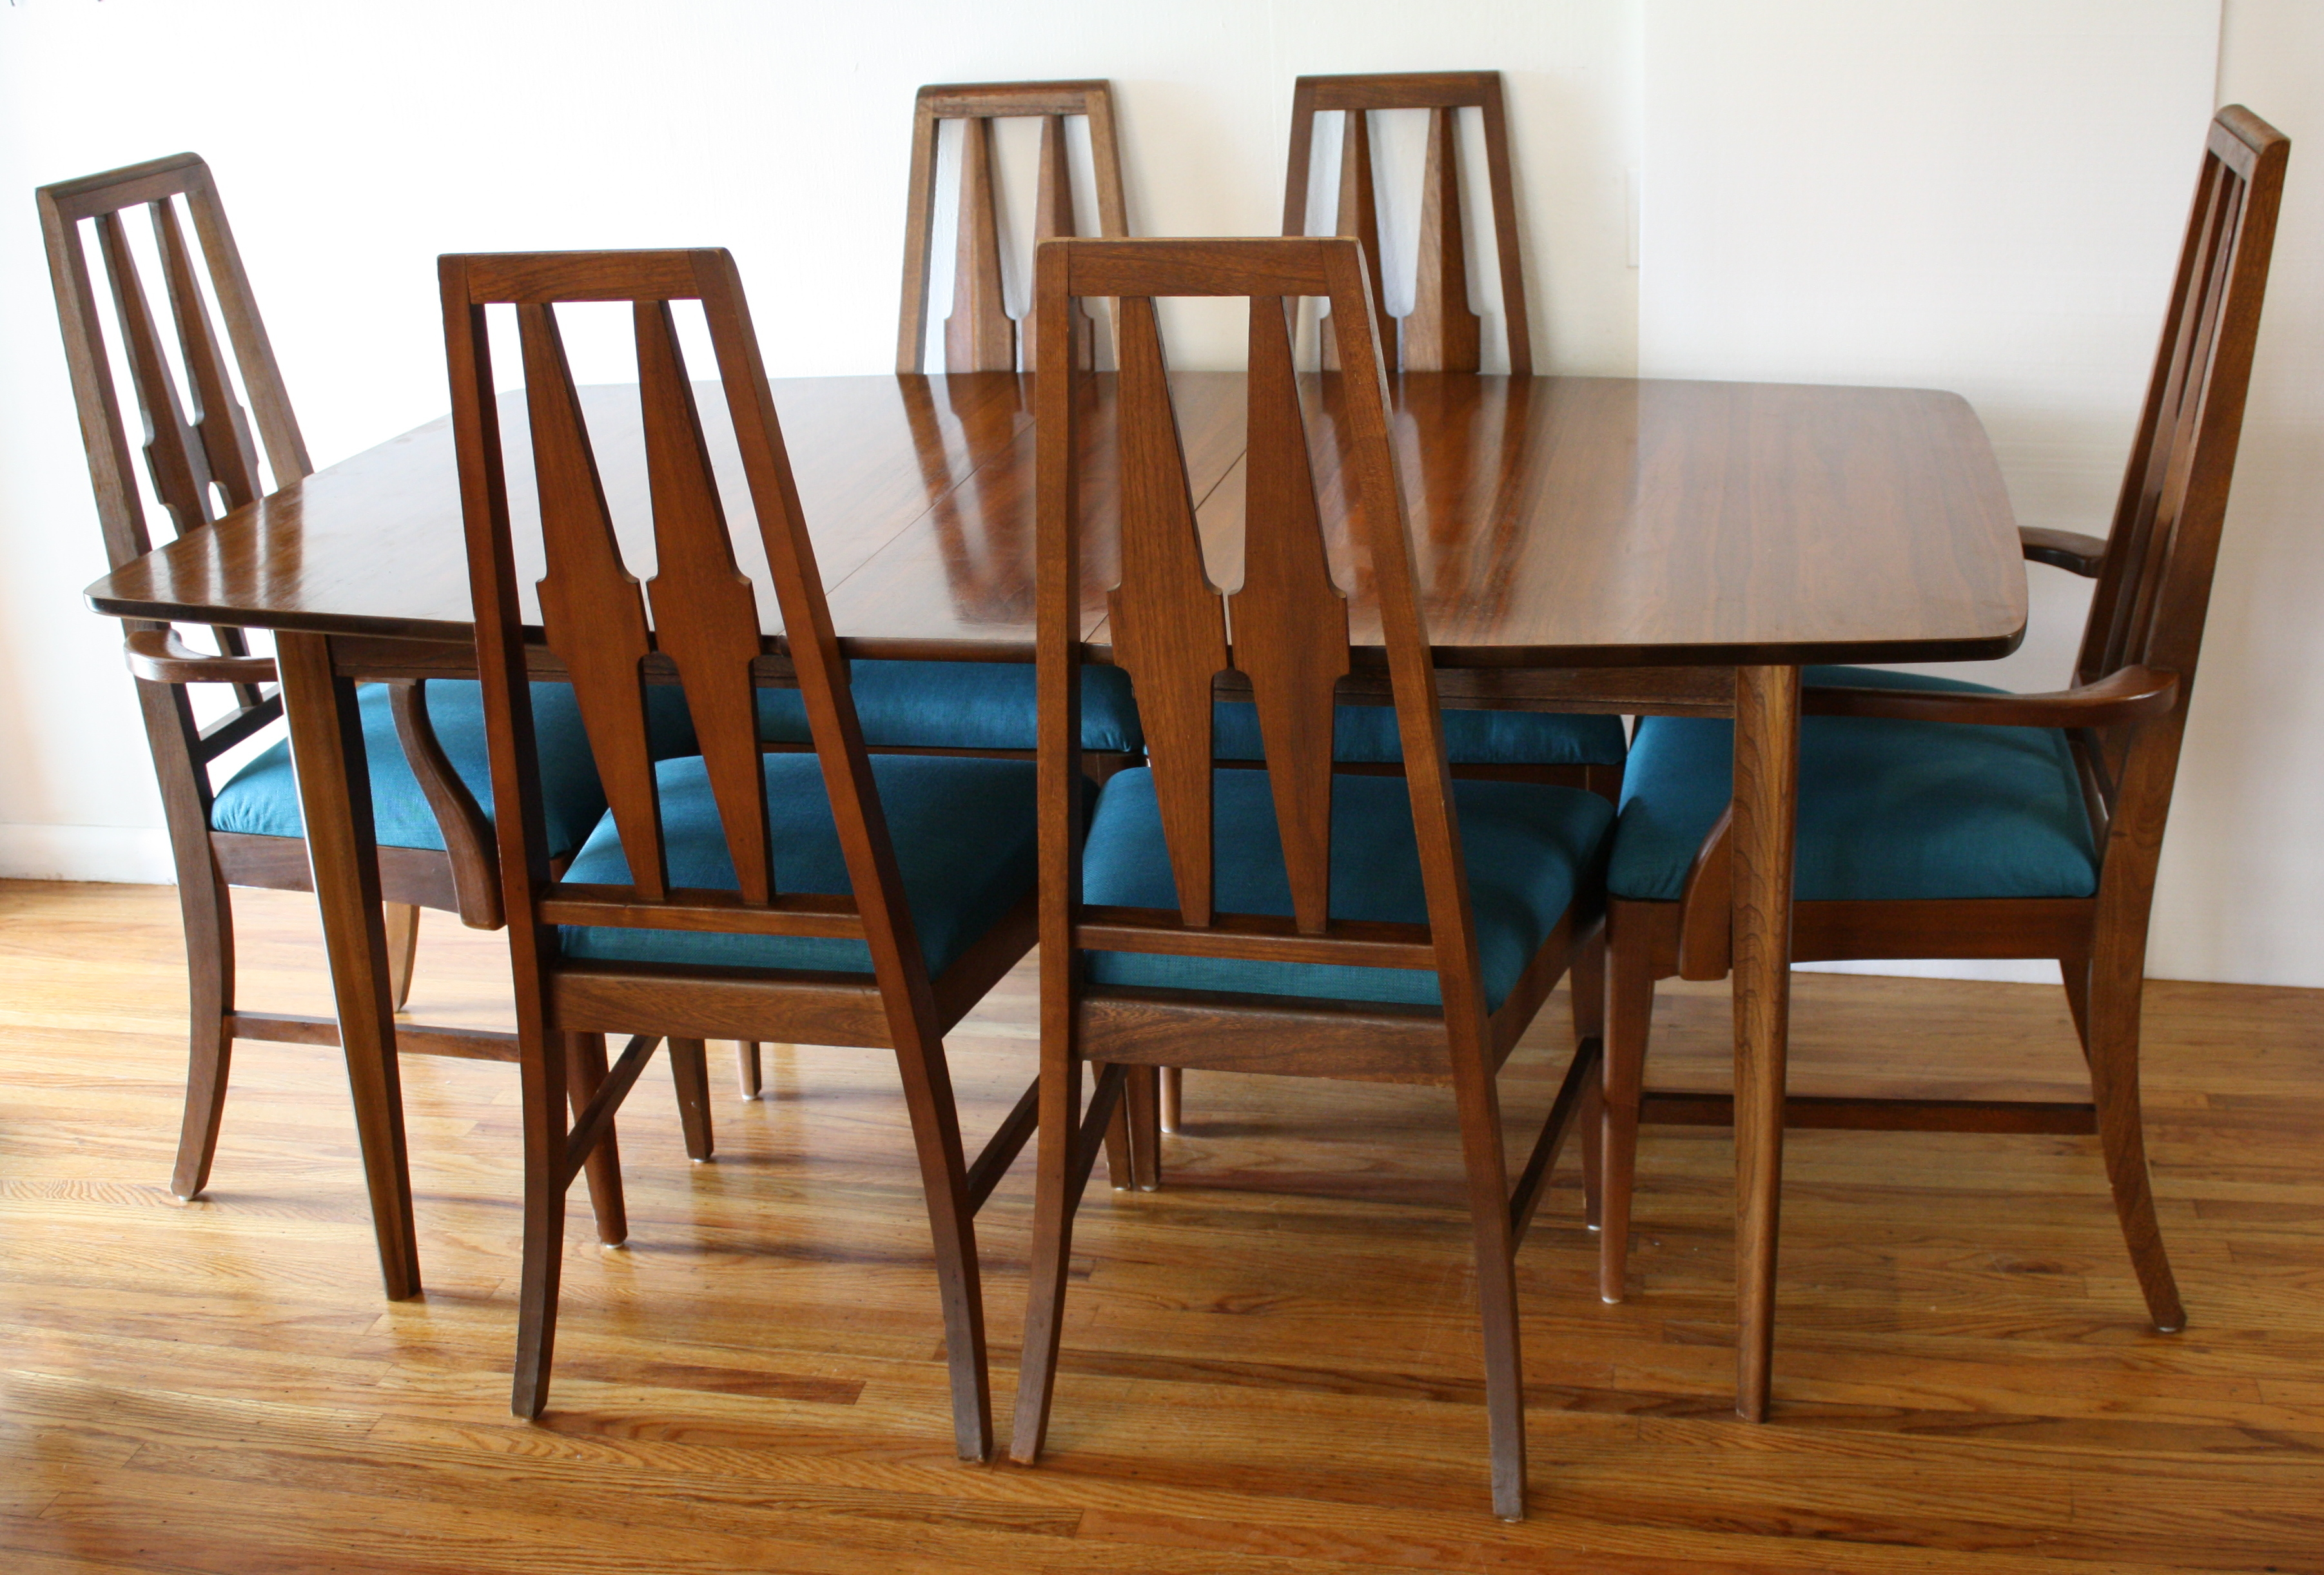 dining table tables teal kitchen chairs Broyhill Brasilia dining table and Broyhill dining chairs 1 JPG